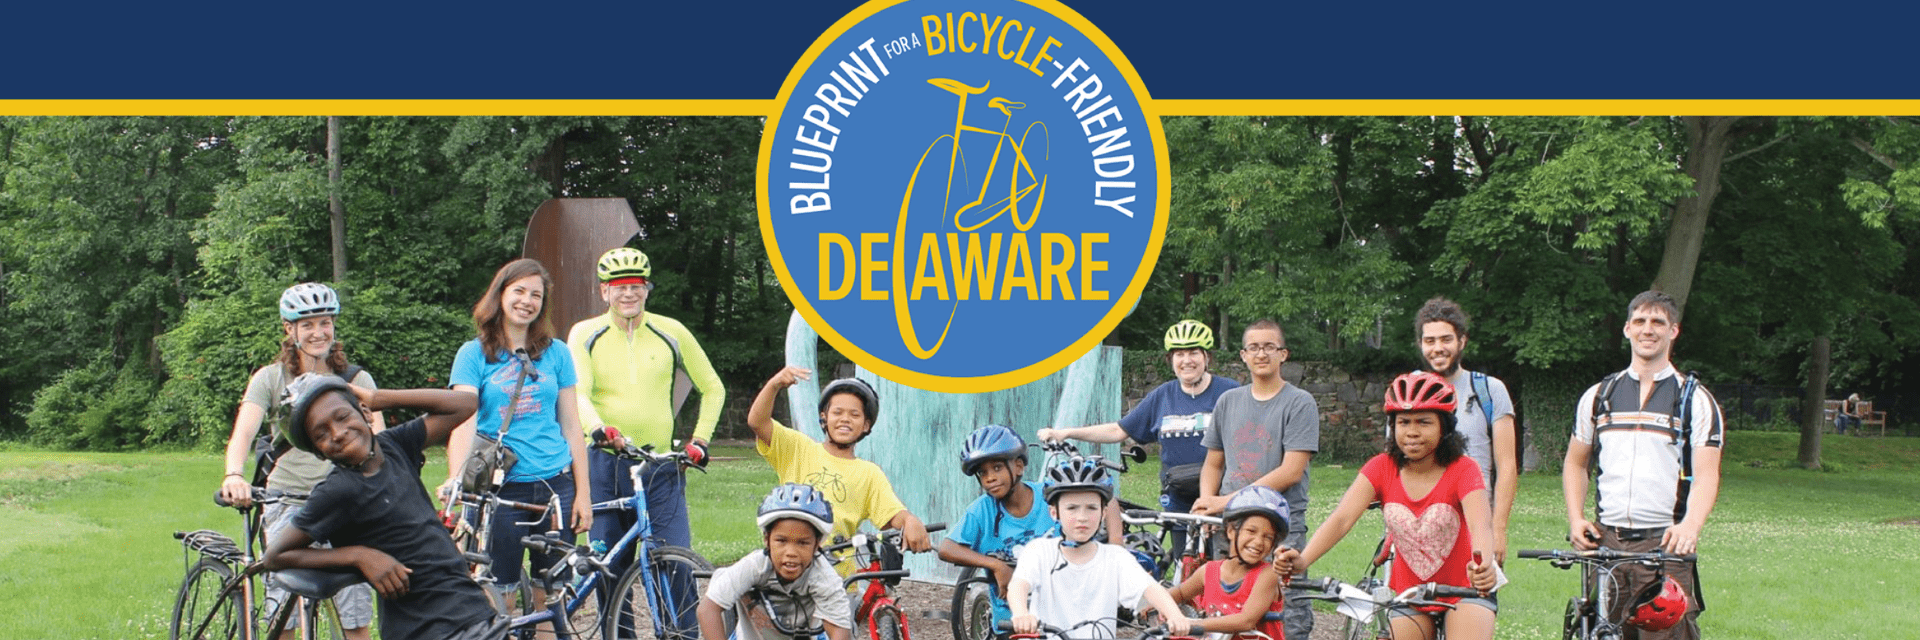 Blueprint for a Bicycle-Friendly Delaware